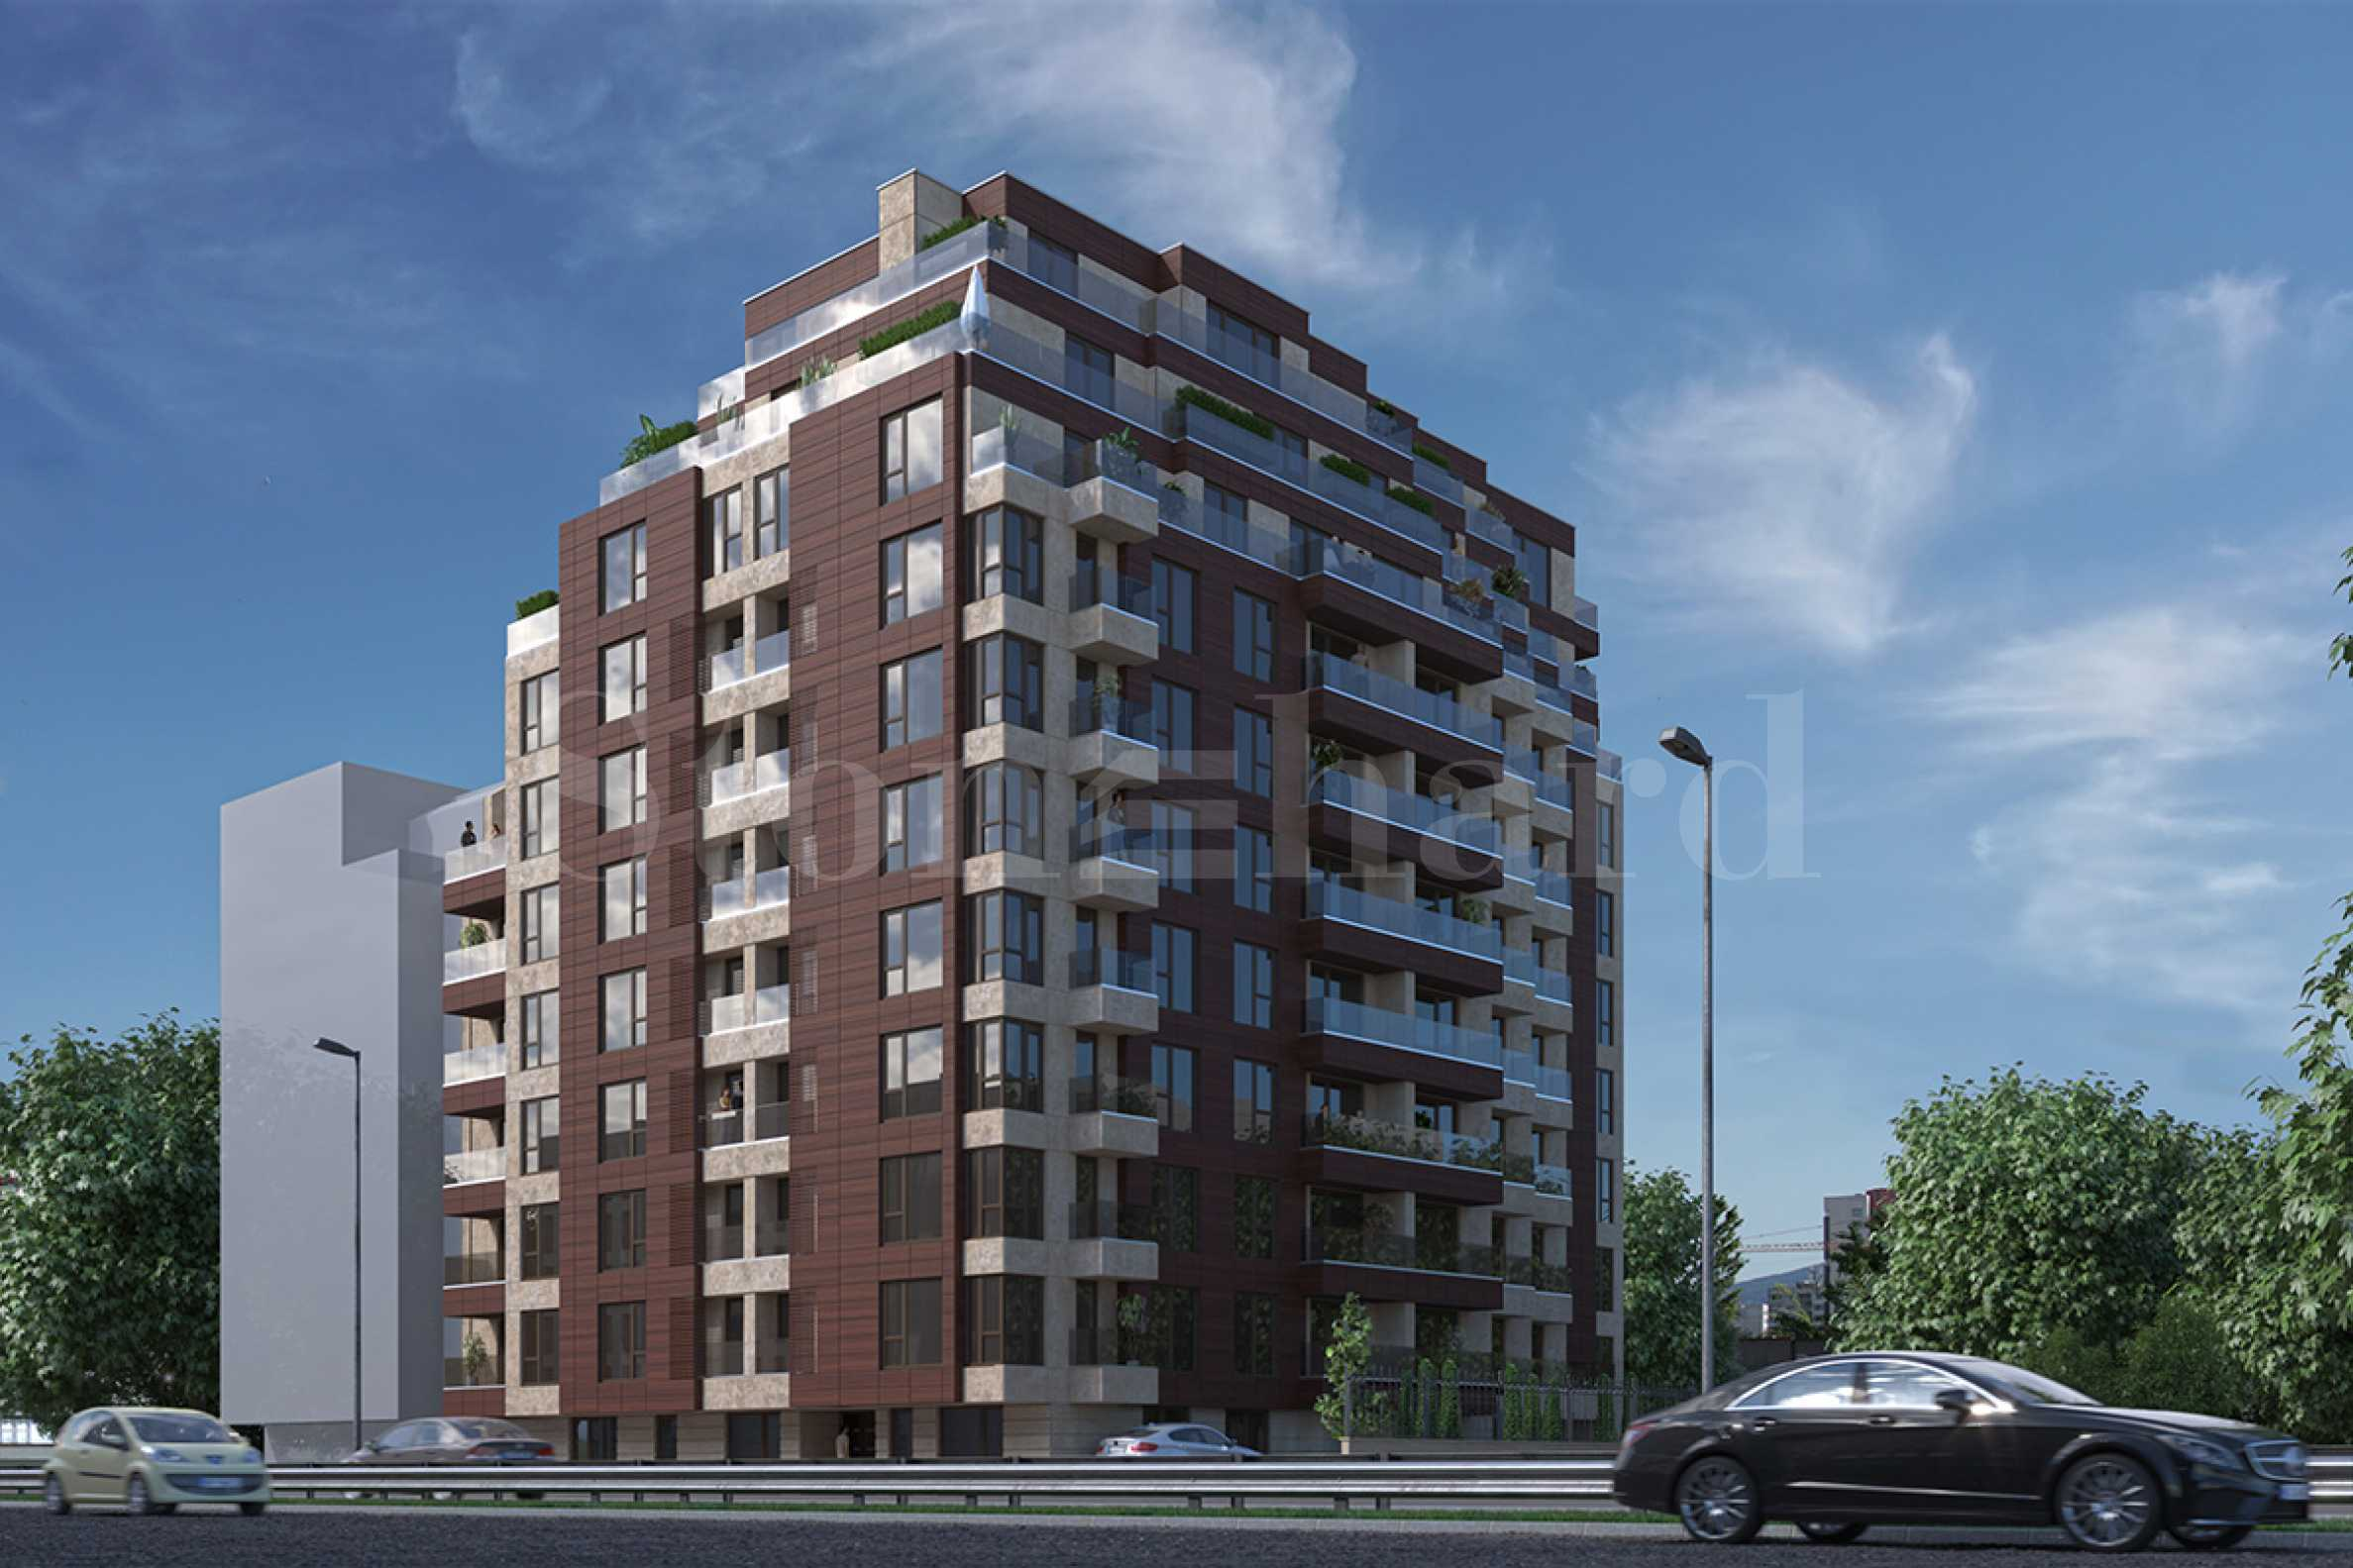 New apartments in Mladost district near metro station and amenities2 - Stonehard